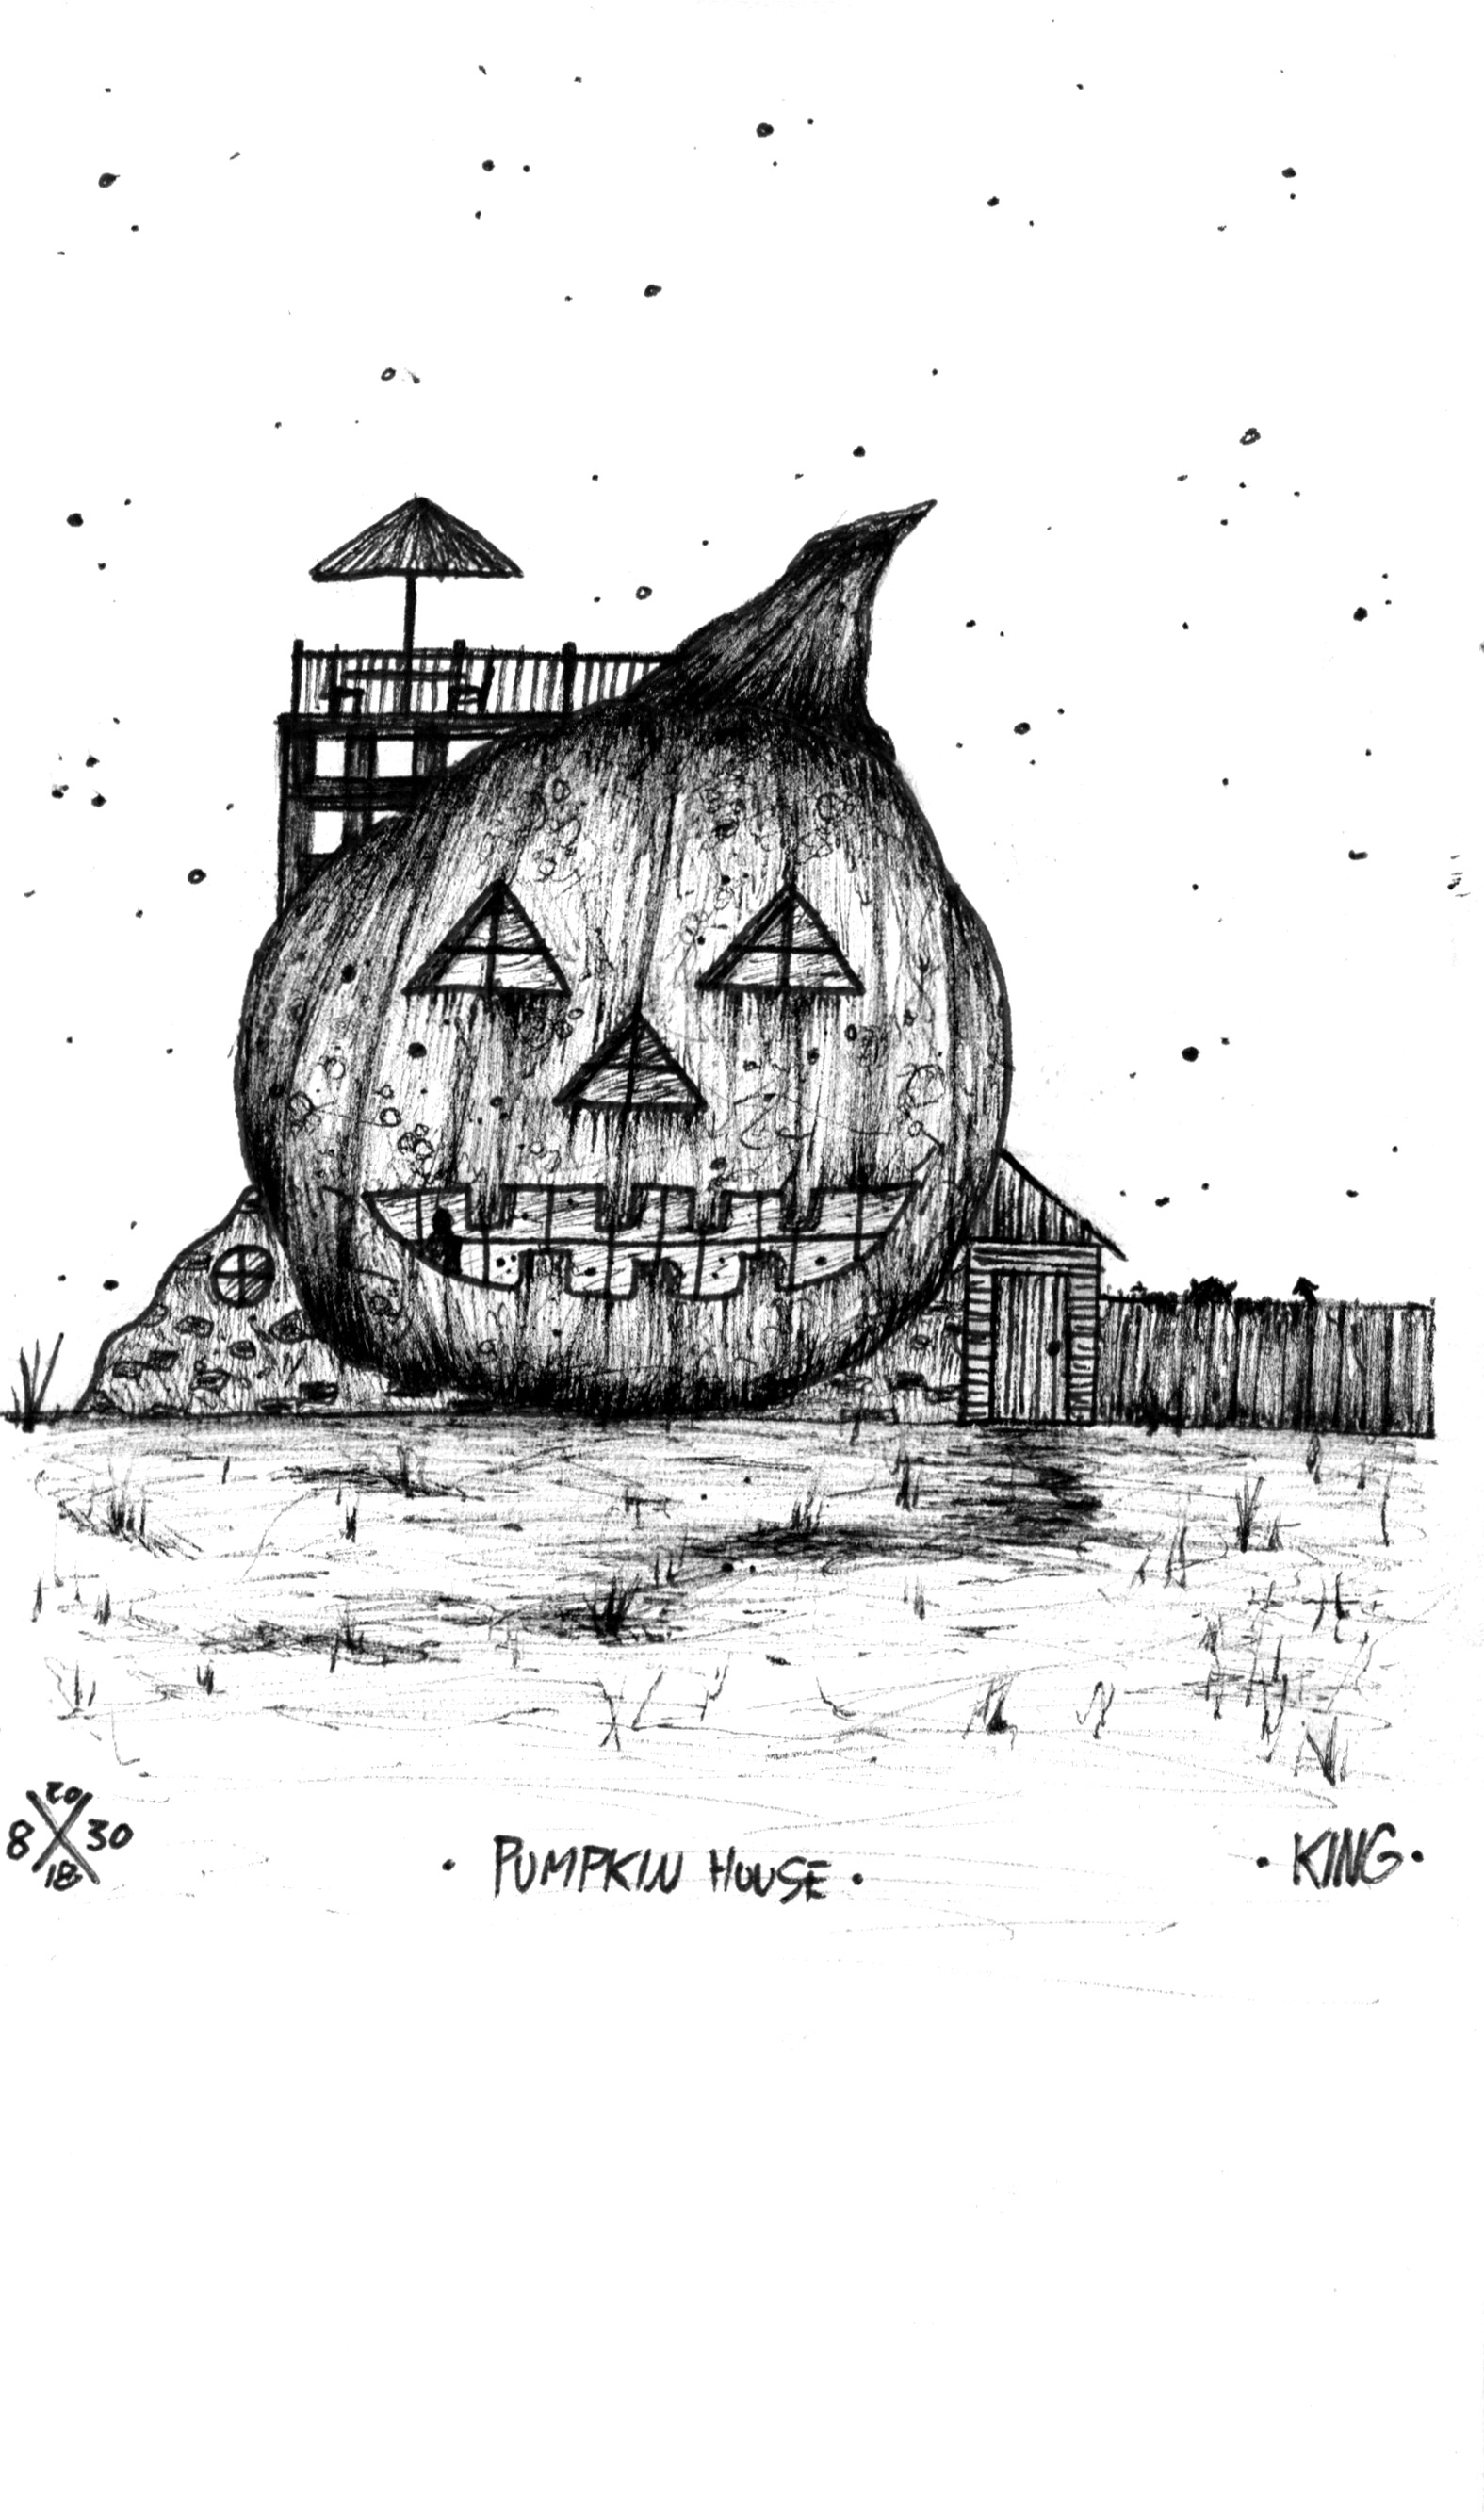 CASEY KING ART PUMPKIN HOUSE.jpg